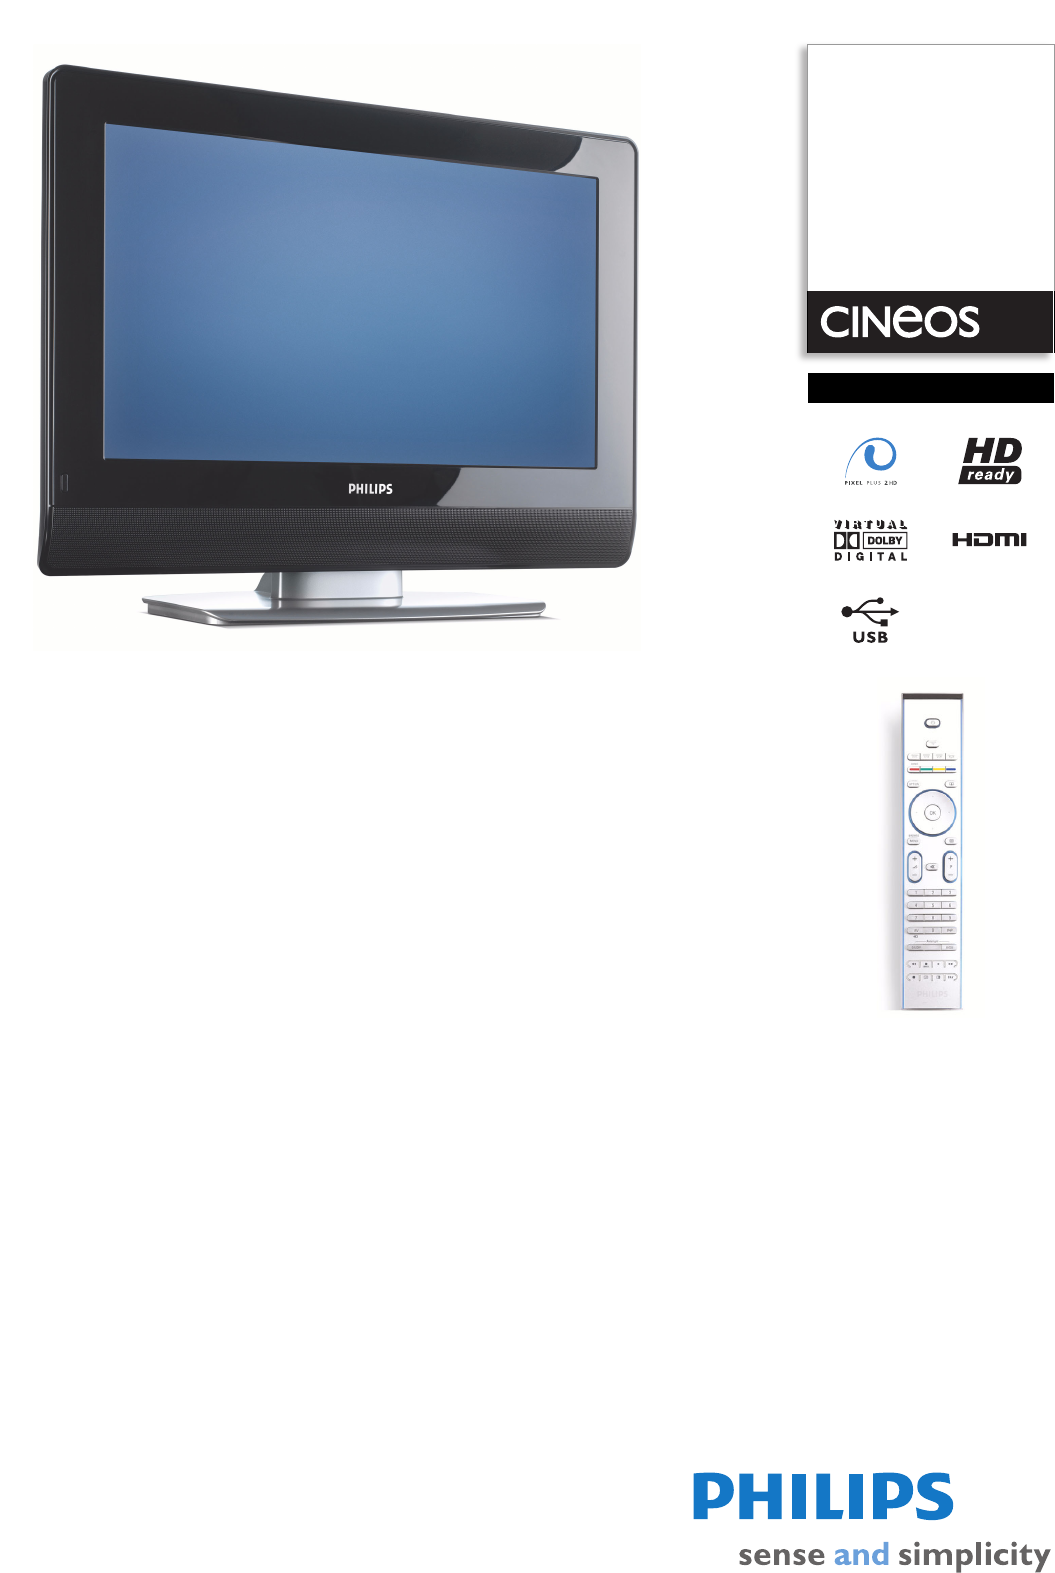 Philips 26pf9531 инструкция